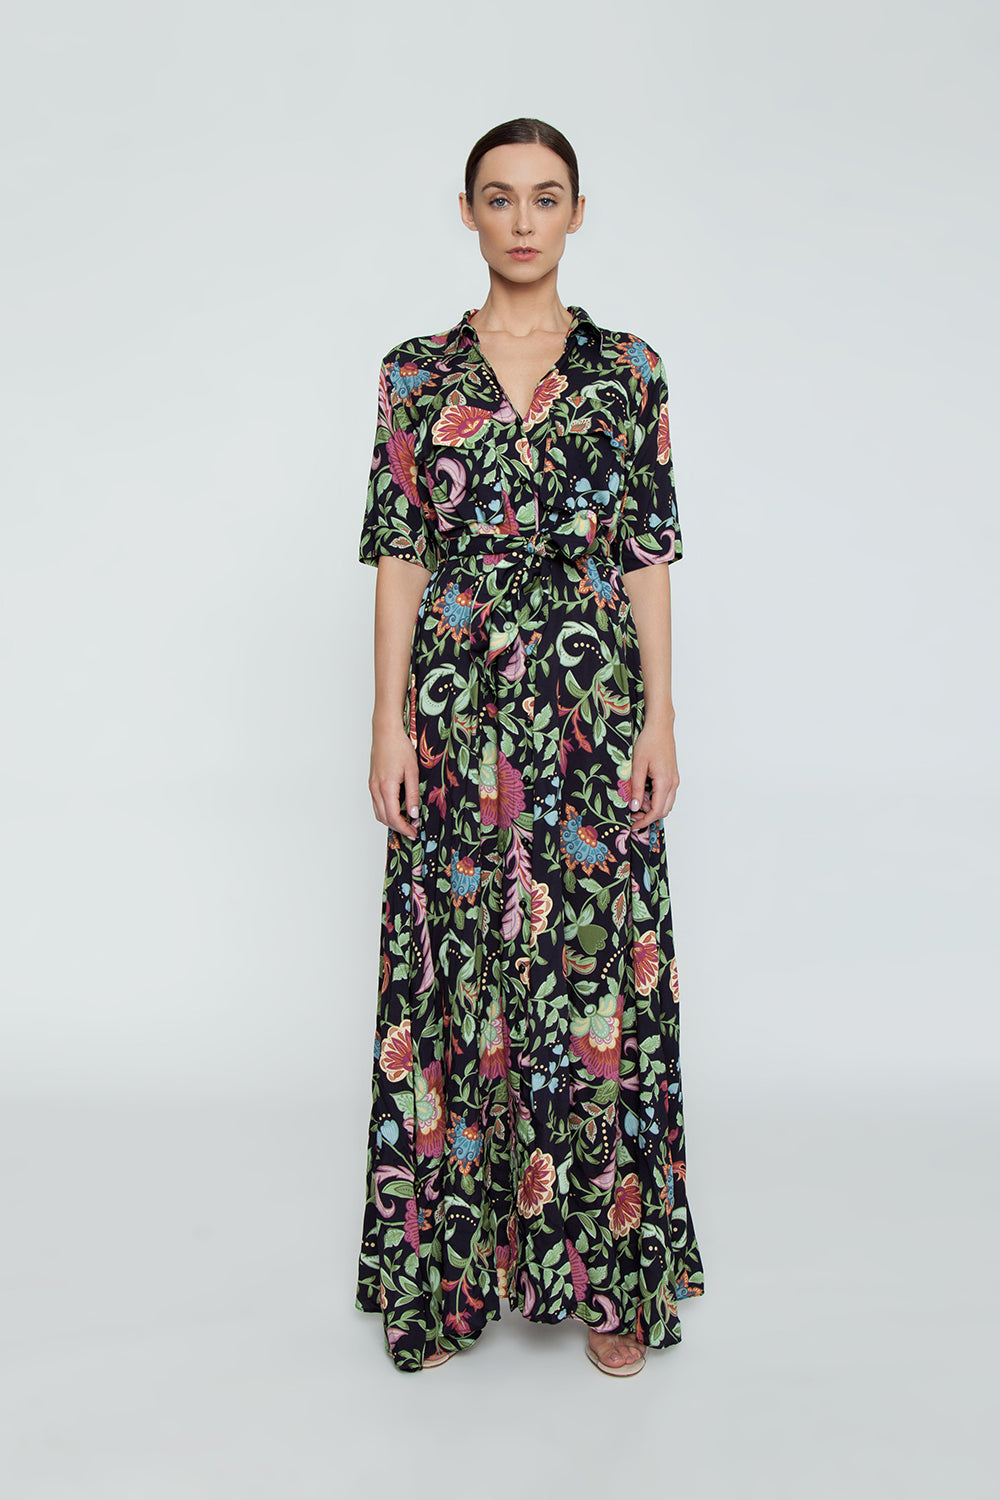 Chemise Short Sleeve Button Up Maxi Dress - Life Flower Print